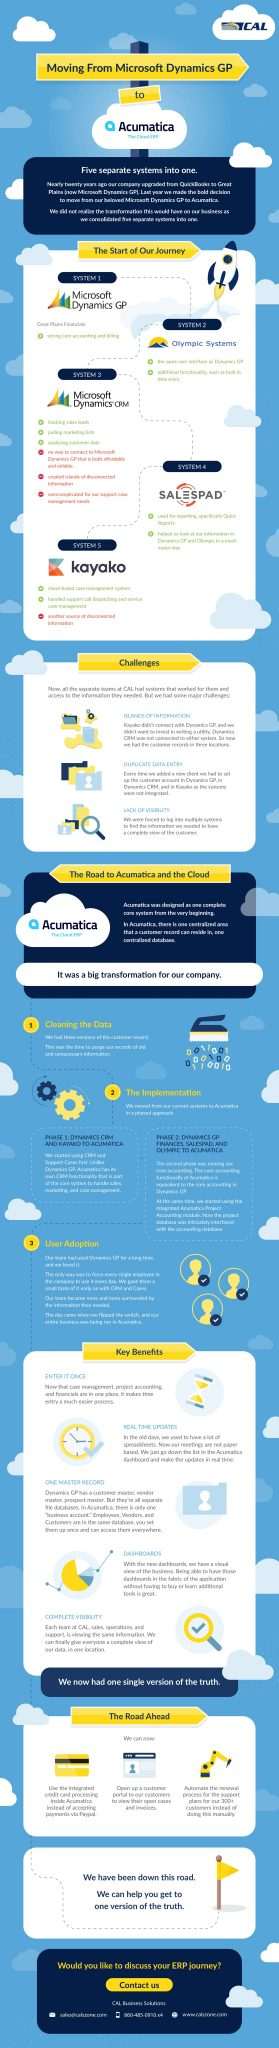 Our Story: Moving From Microsoft Dynamics GP to Acumatica Cloud ERP